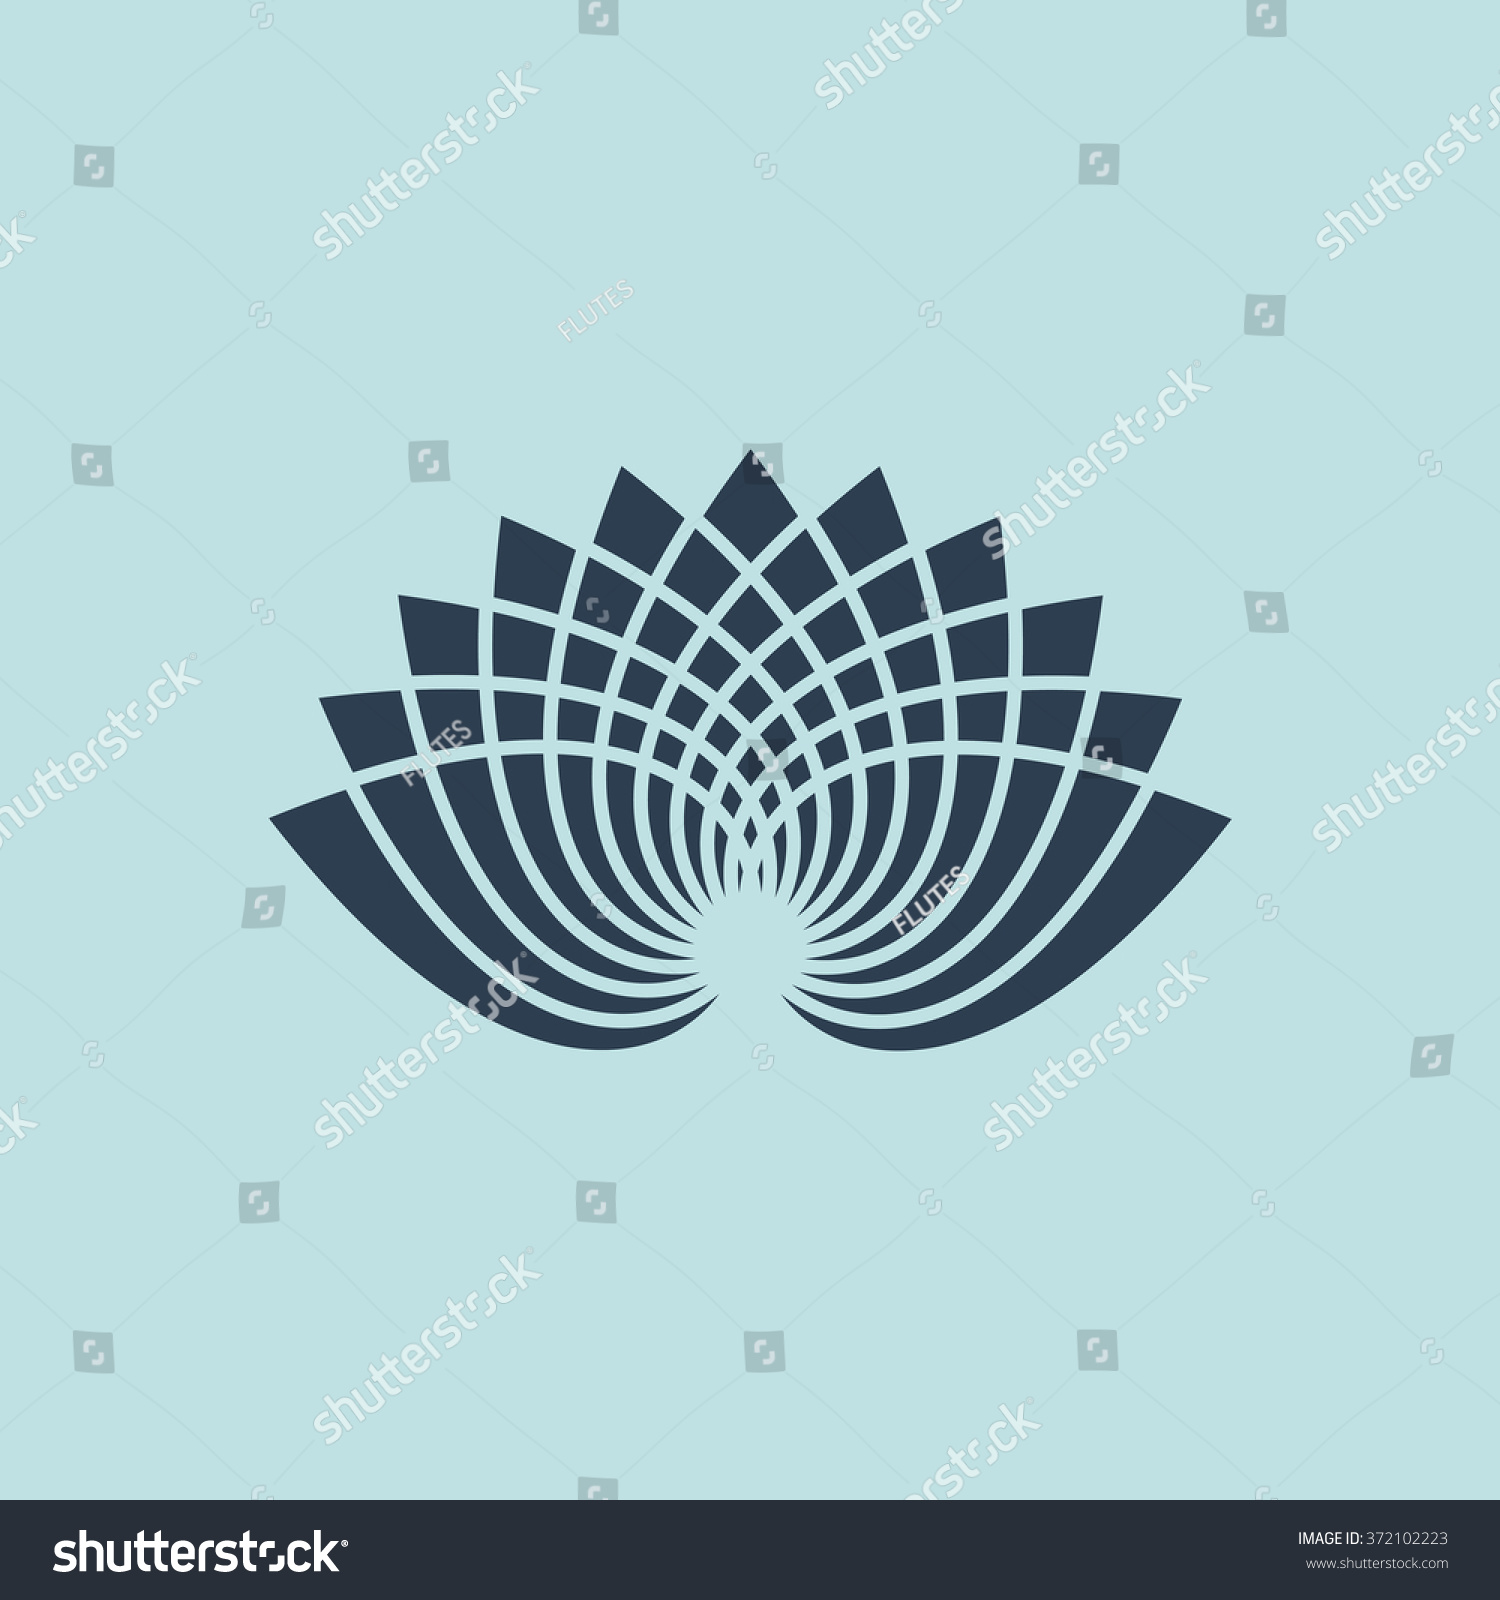 Icon lotus flower eps 10 stock vector royalty free 372102223 icon of lotus flower eps 10 izmirmasajfo